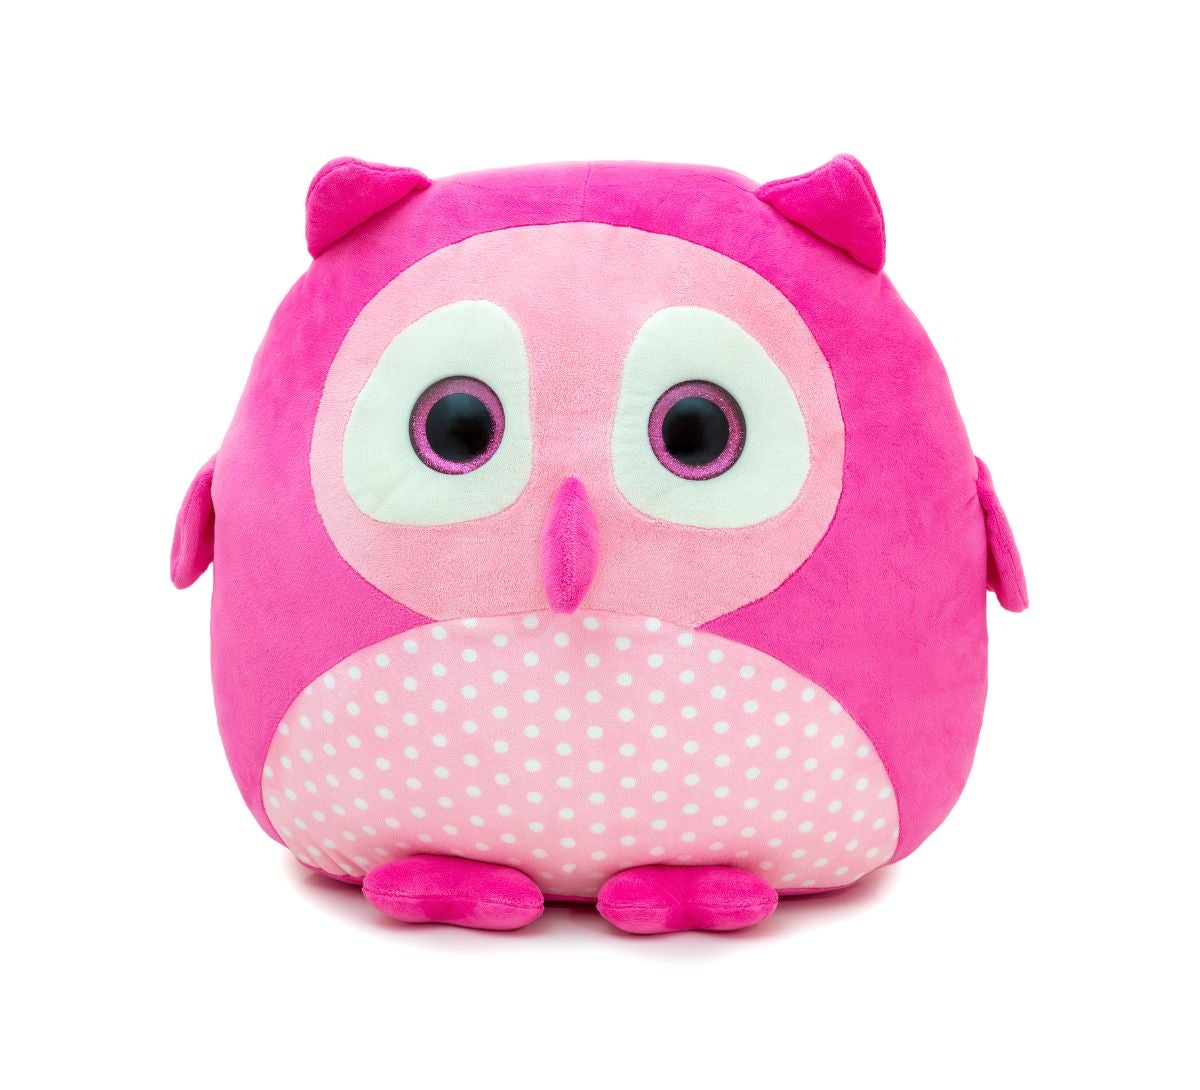 Soft plushie in the shape of an owl